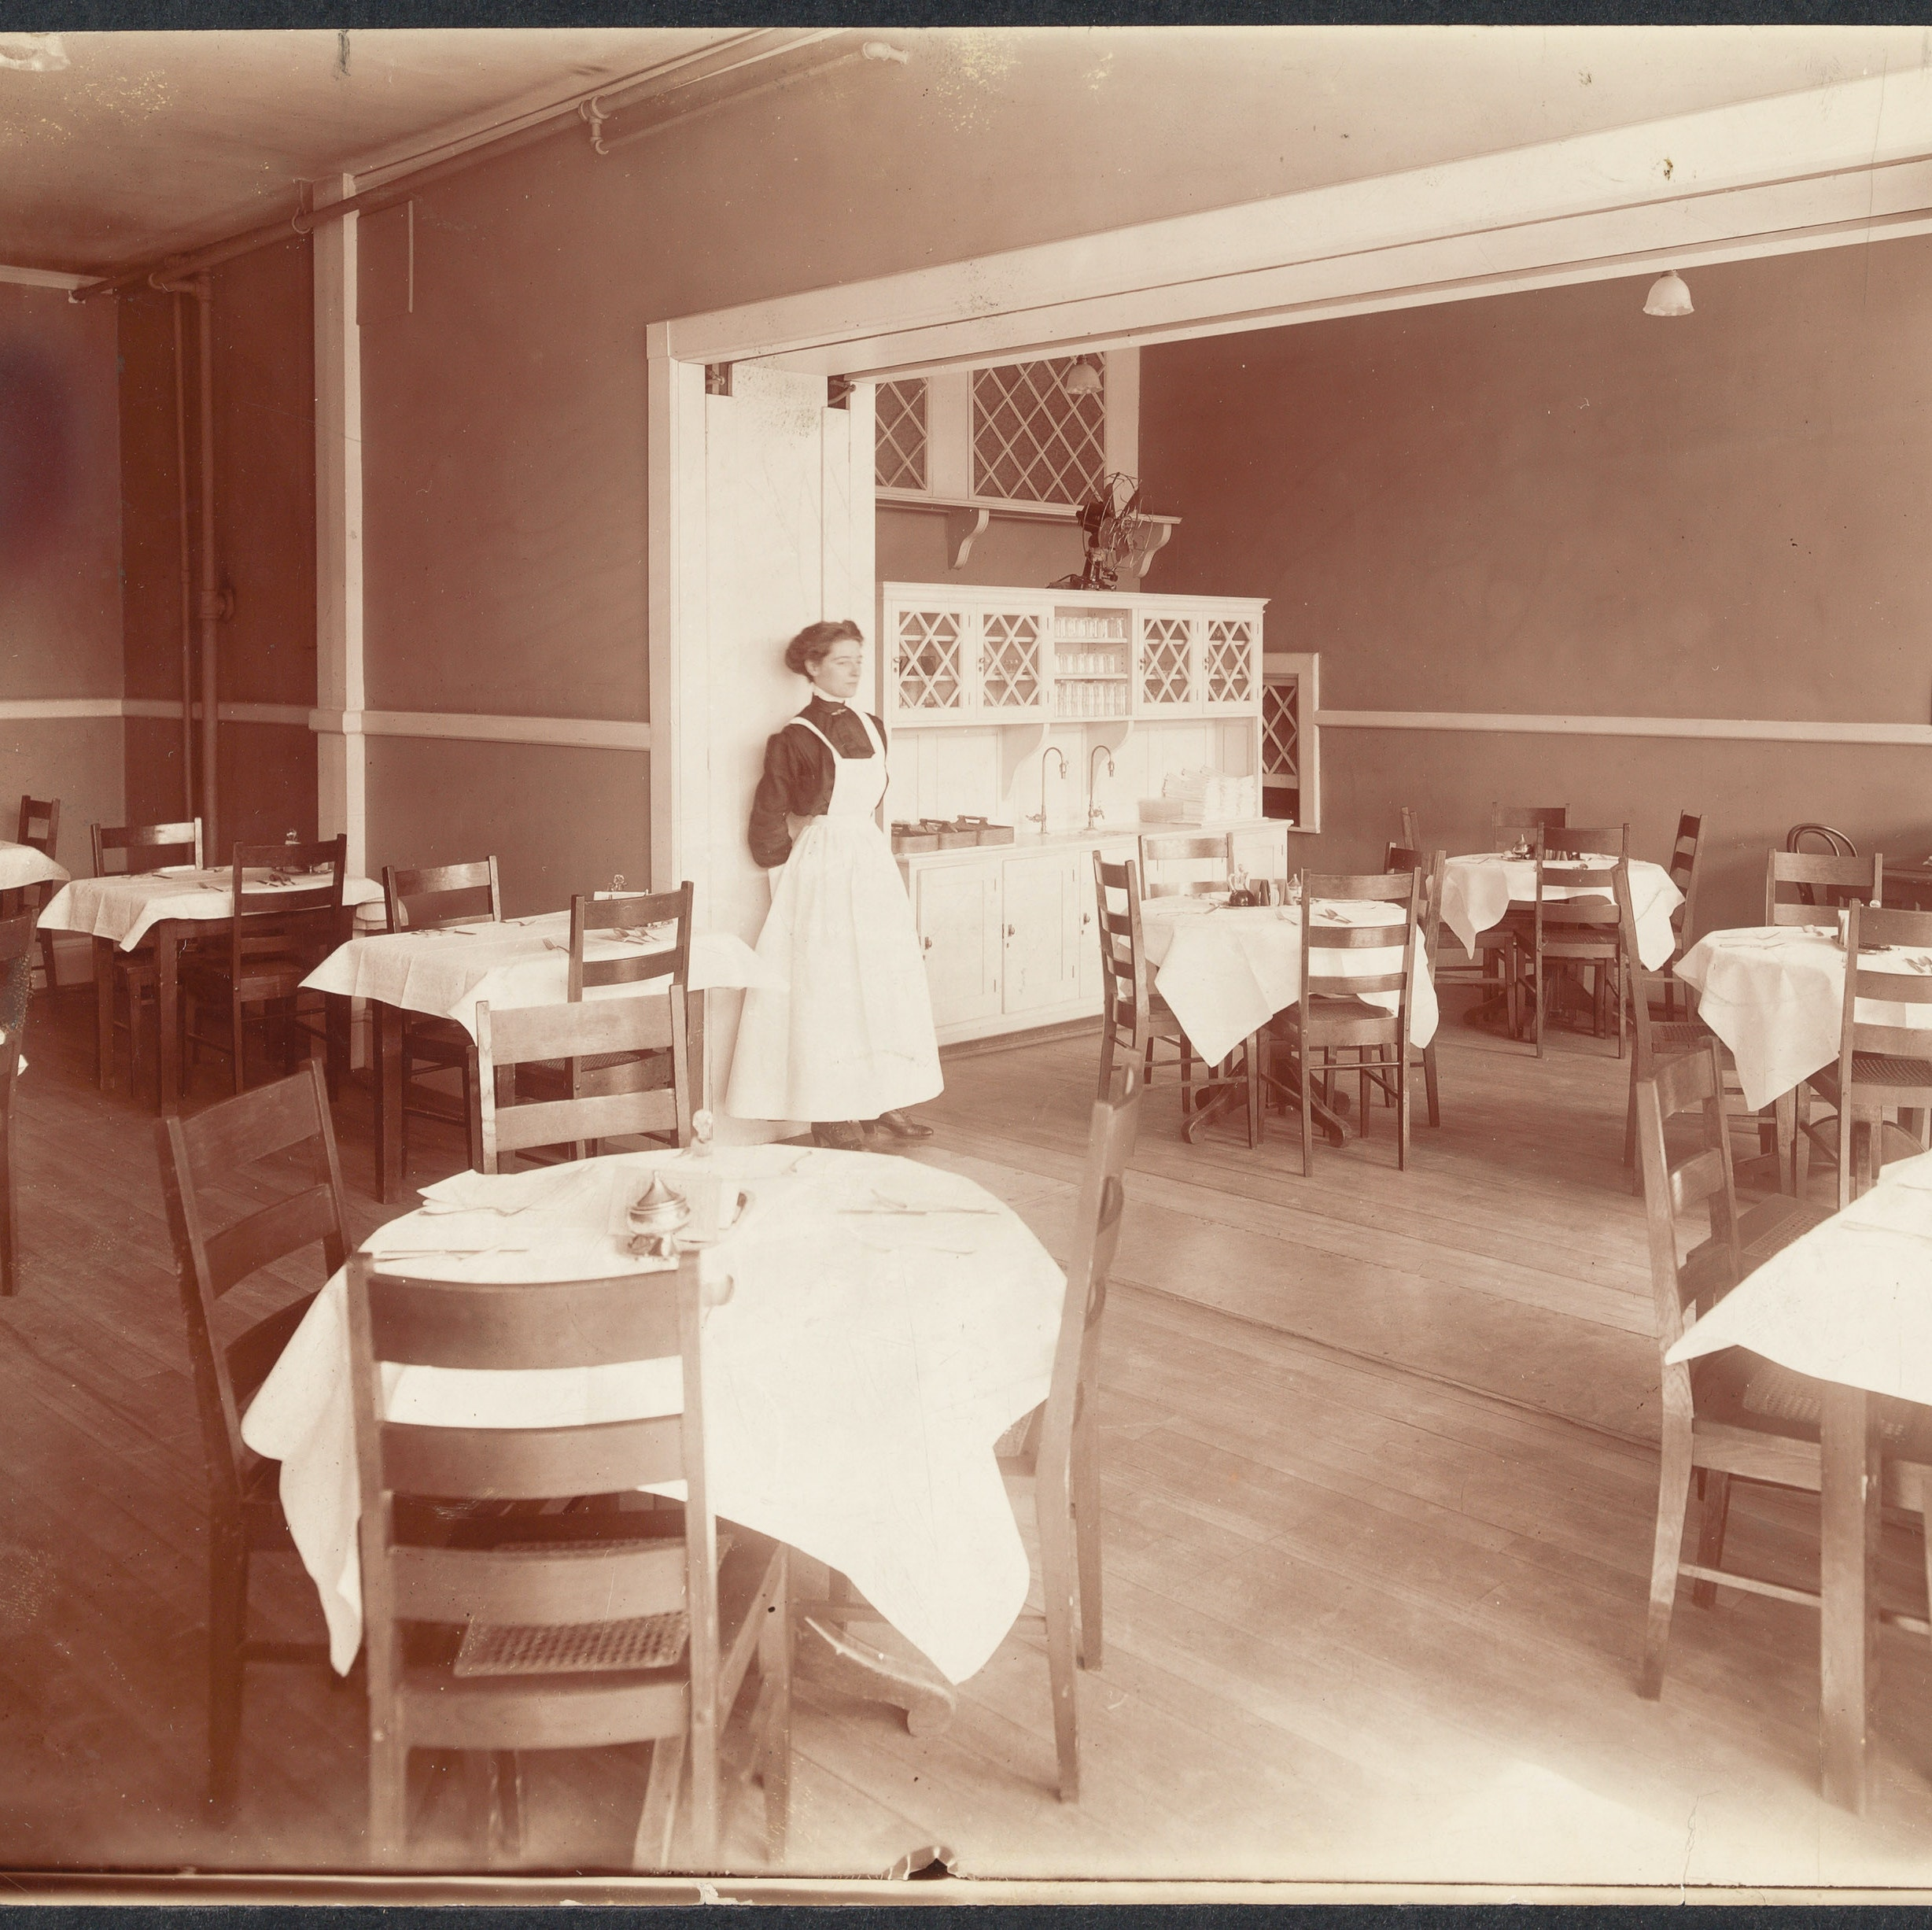 Interior view of the WEIU lunch room